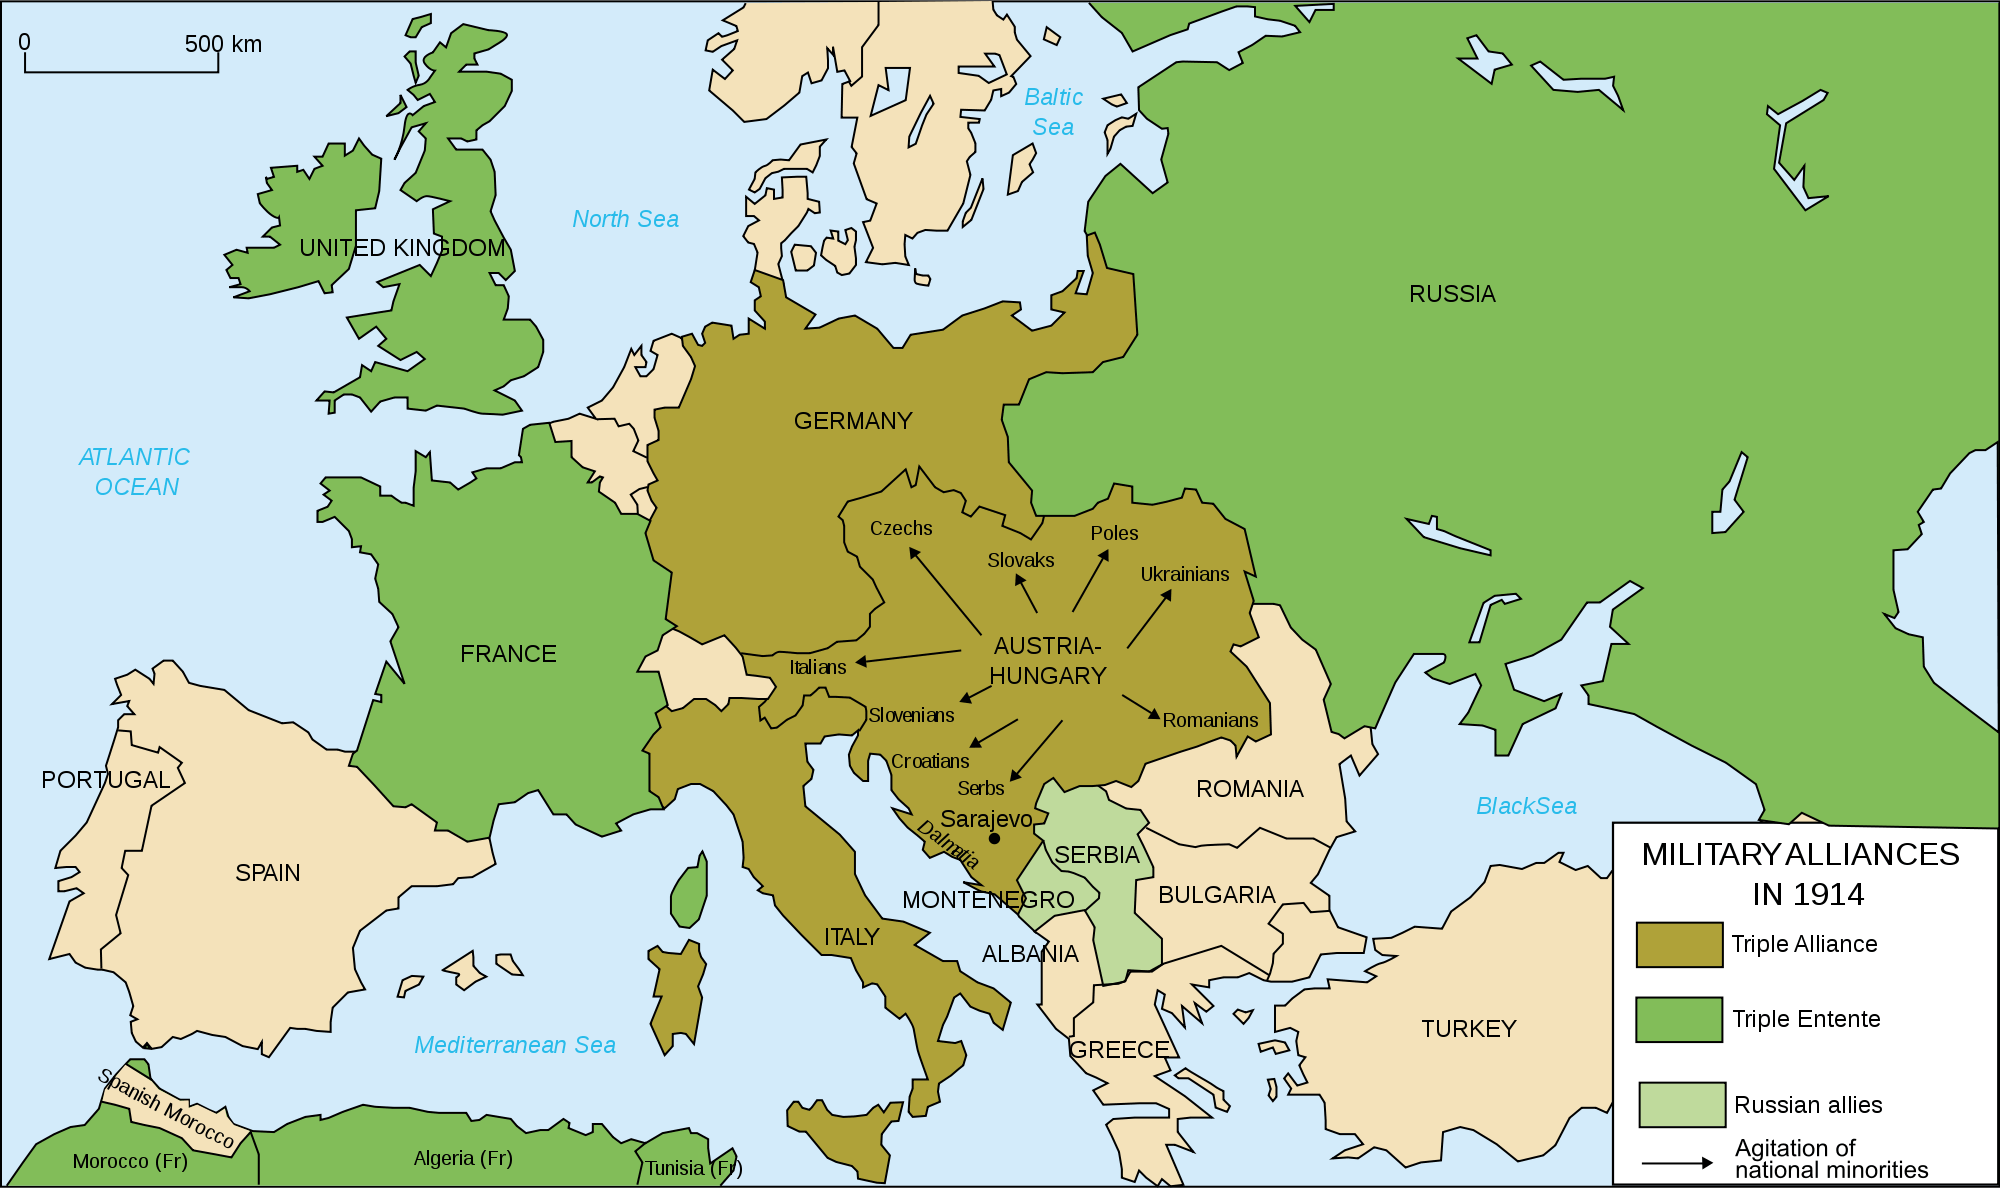 Europe's military alliances in World War I, 1914